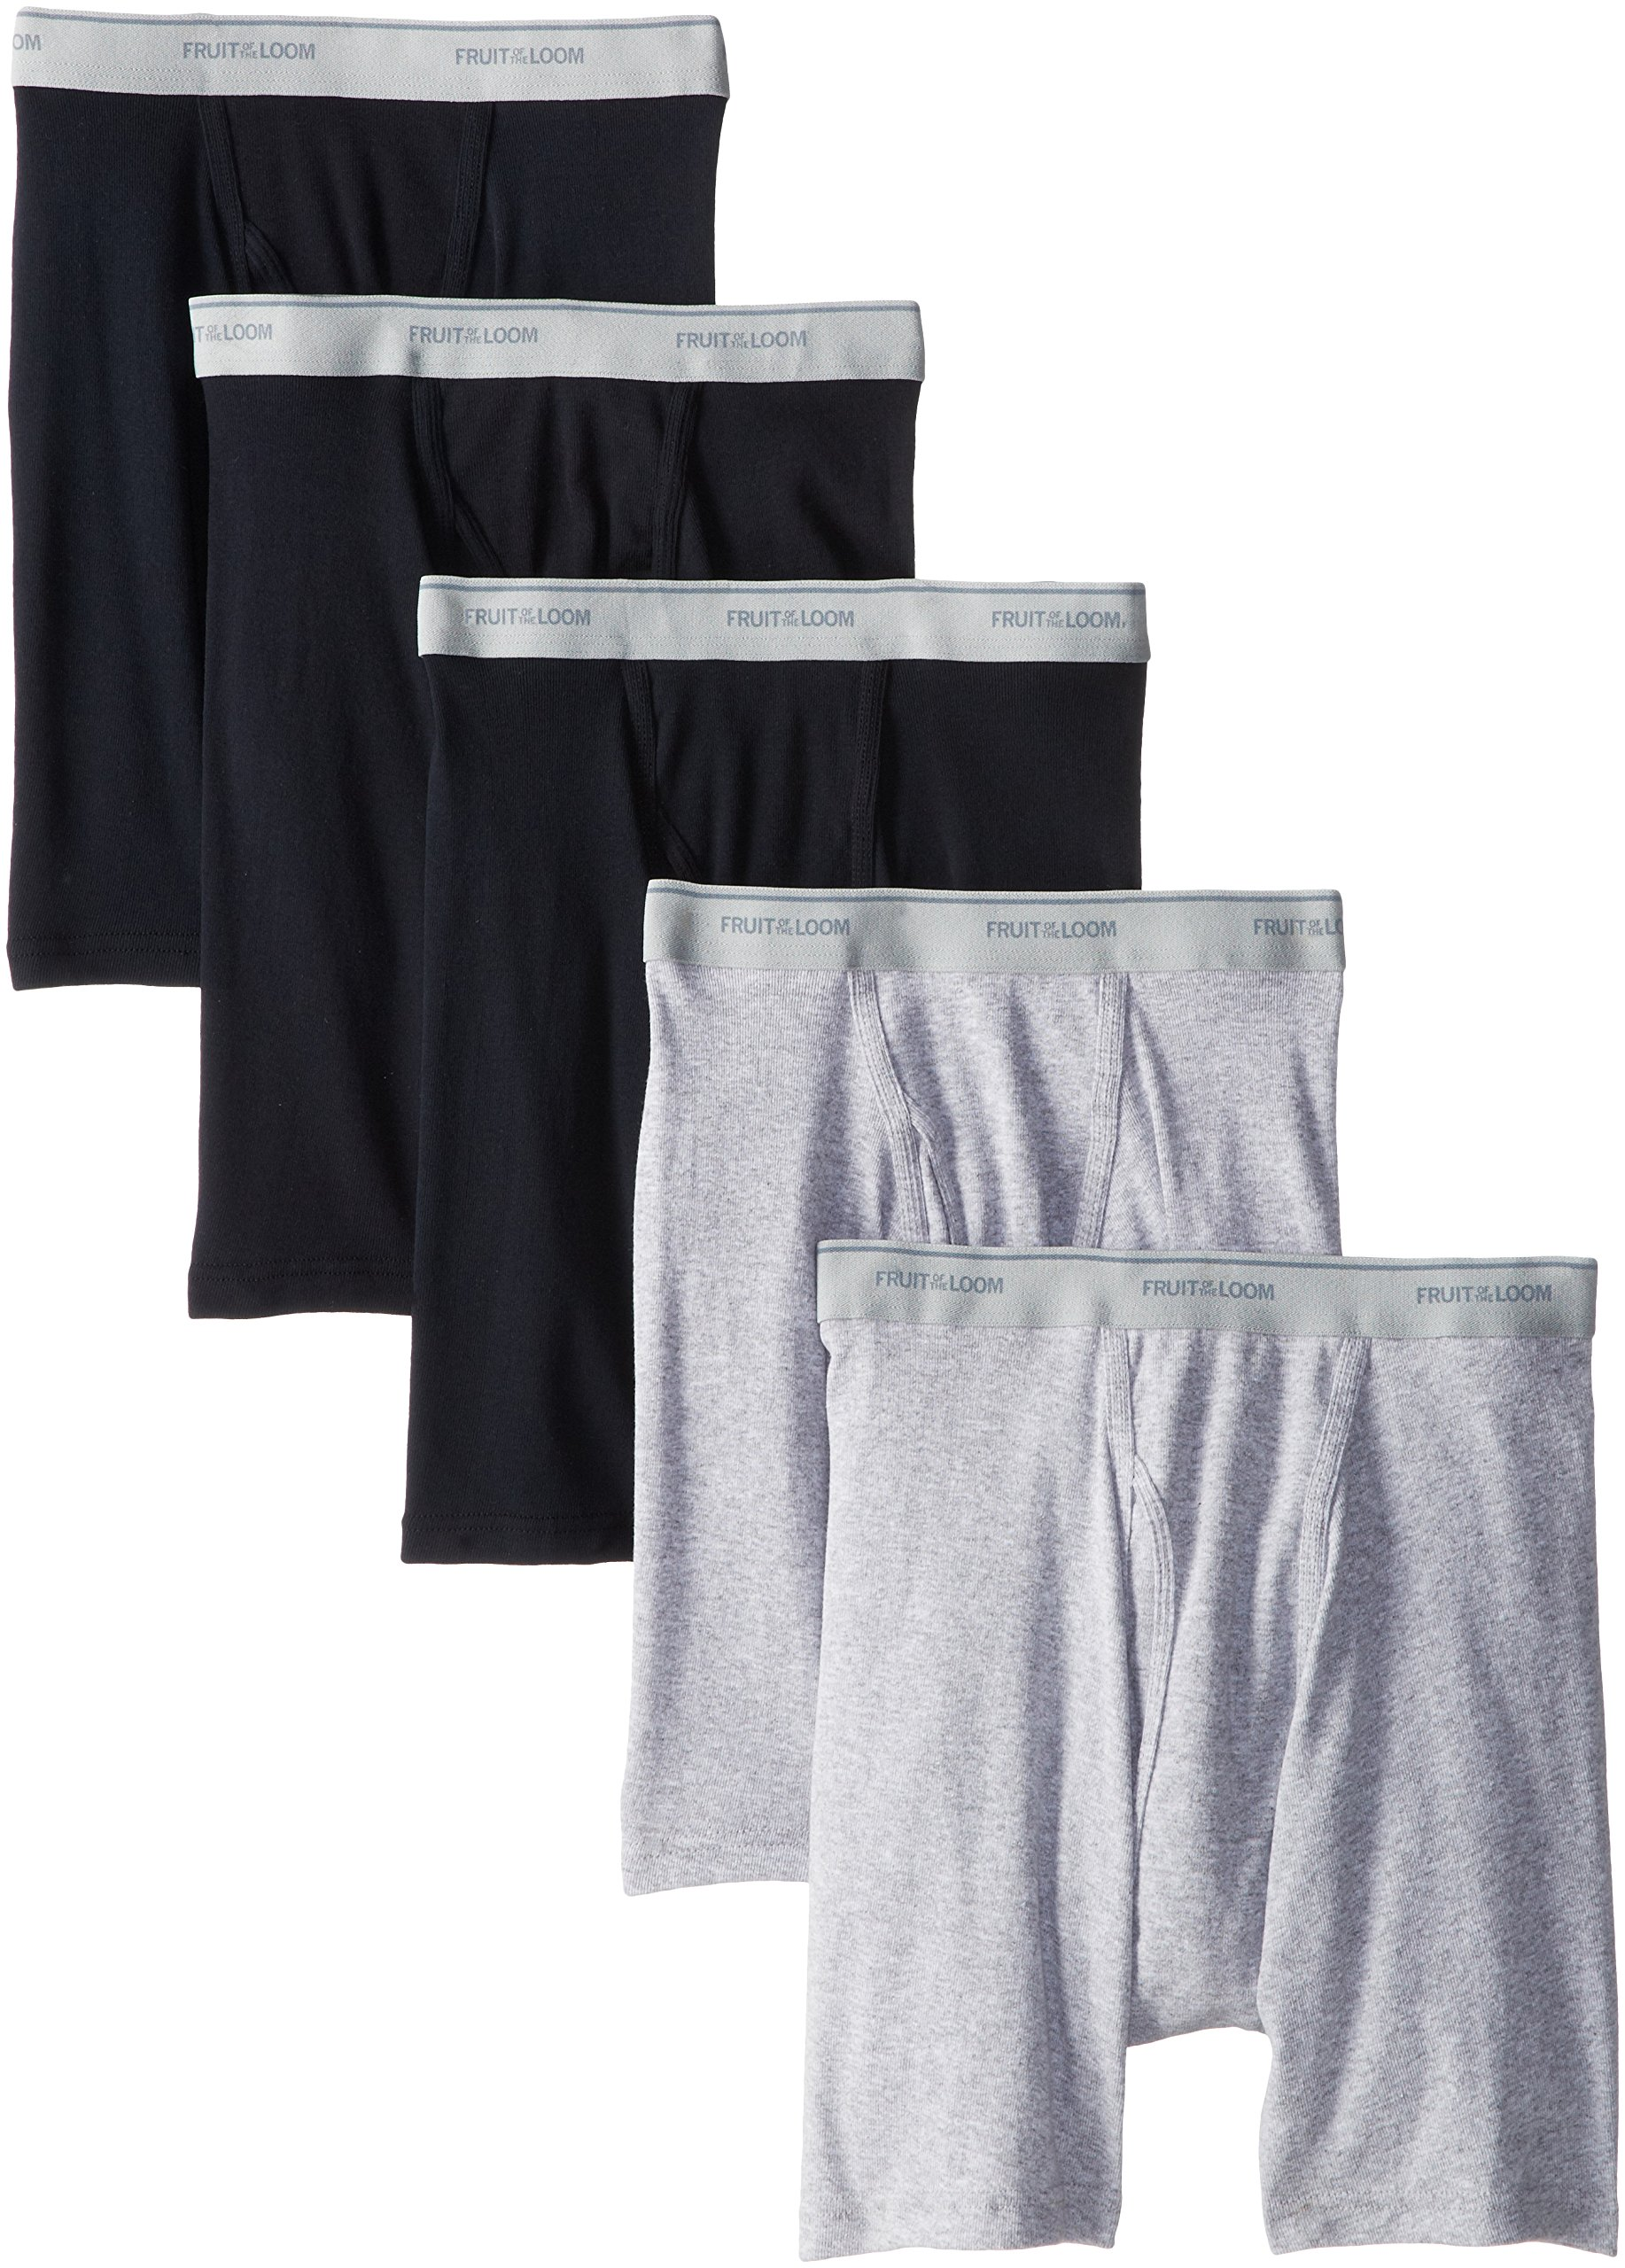 Fruit of the Loom Men's Boxer Brief, Black/Gray, Medium(Pack of 5)